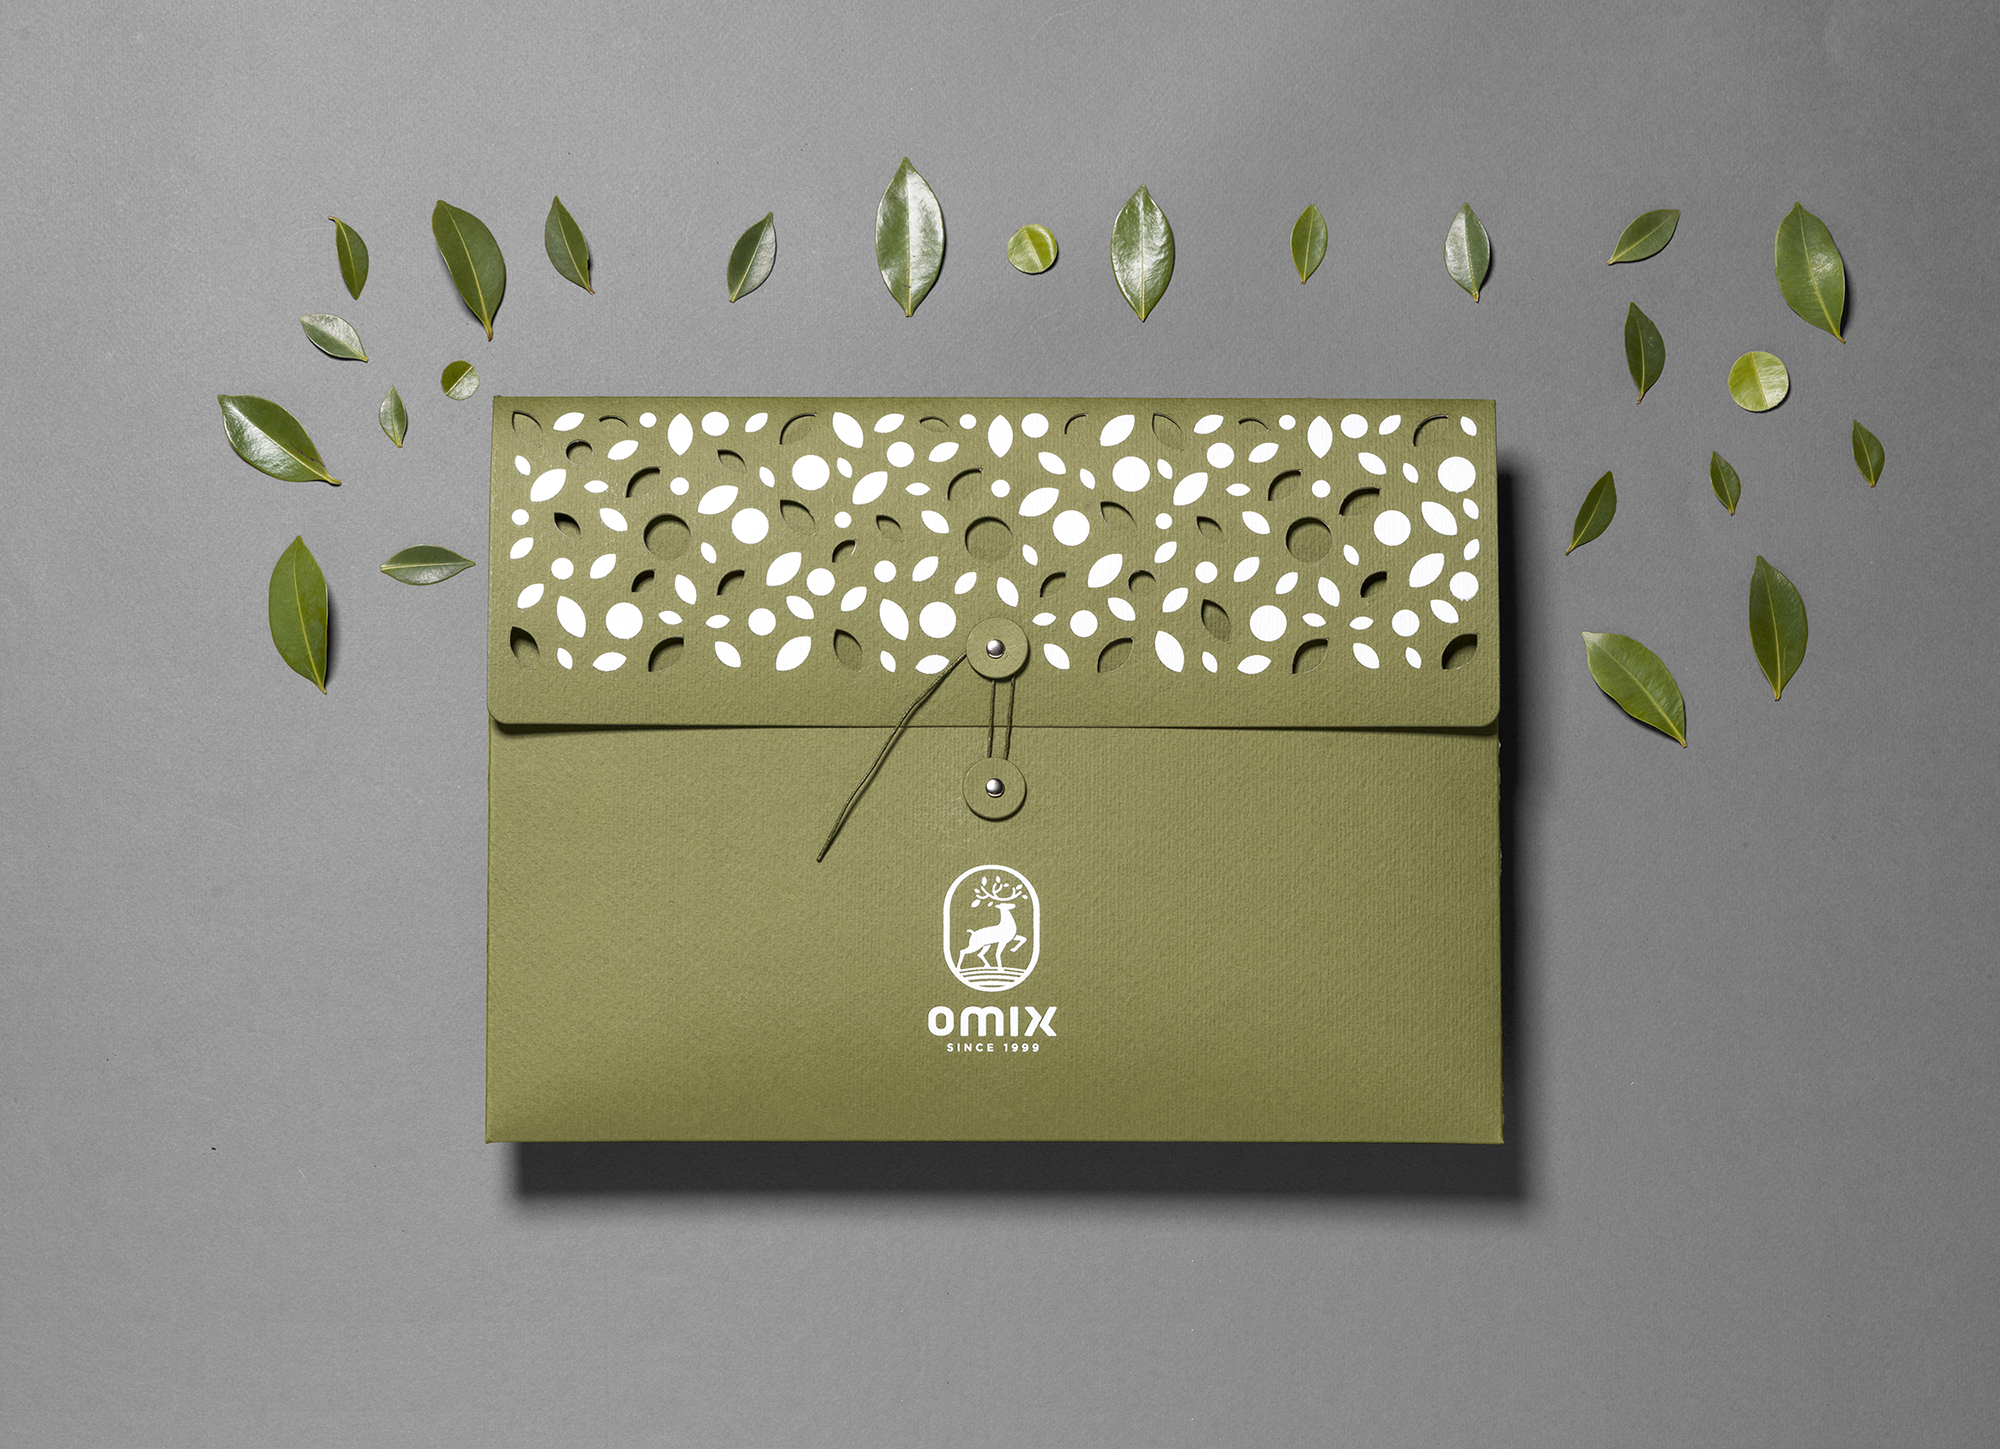 rgb_creative_ideas_design_packaging_bratus_omix_011